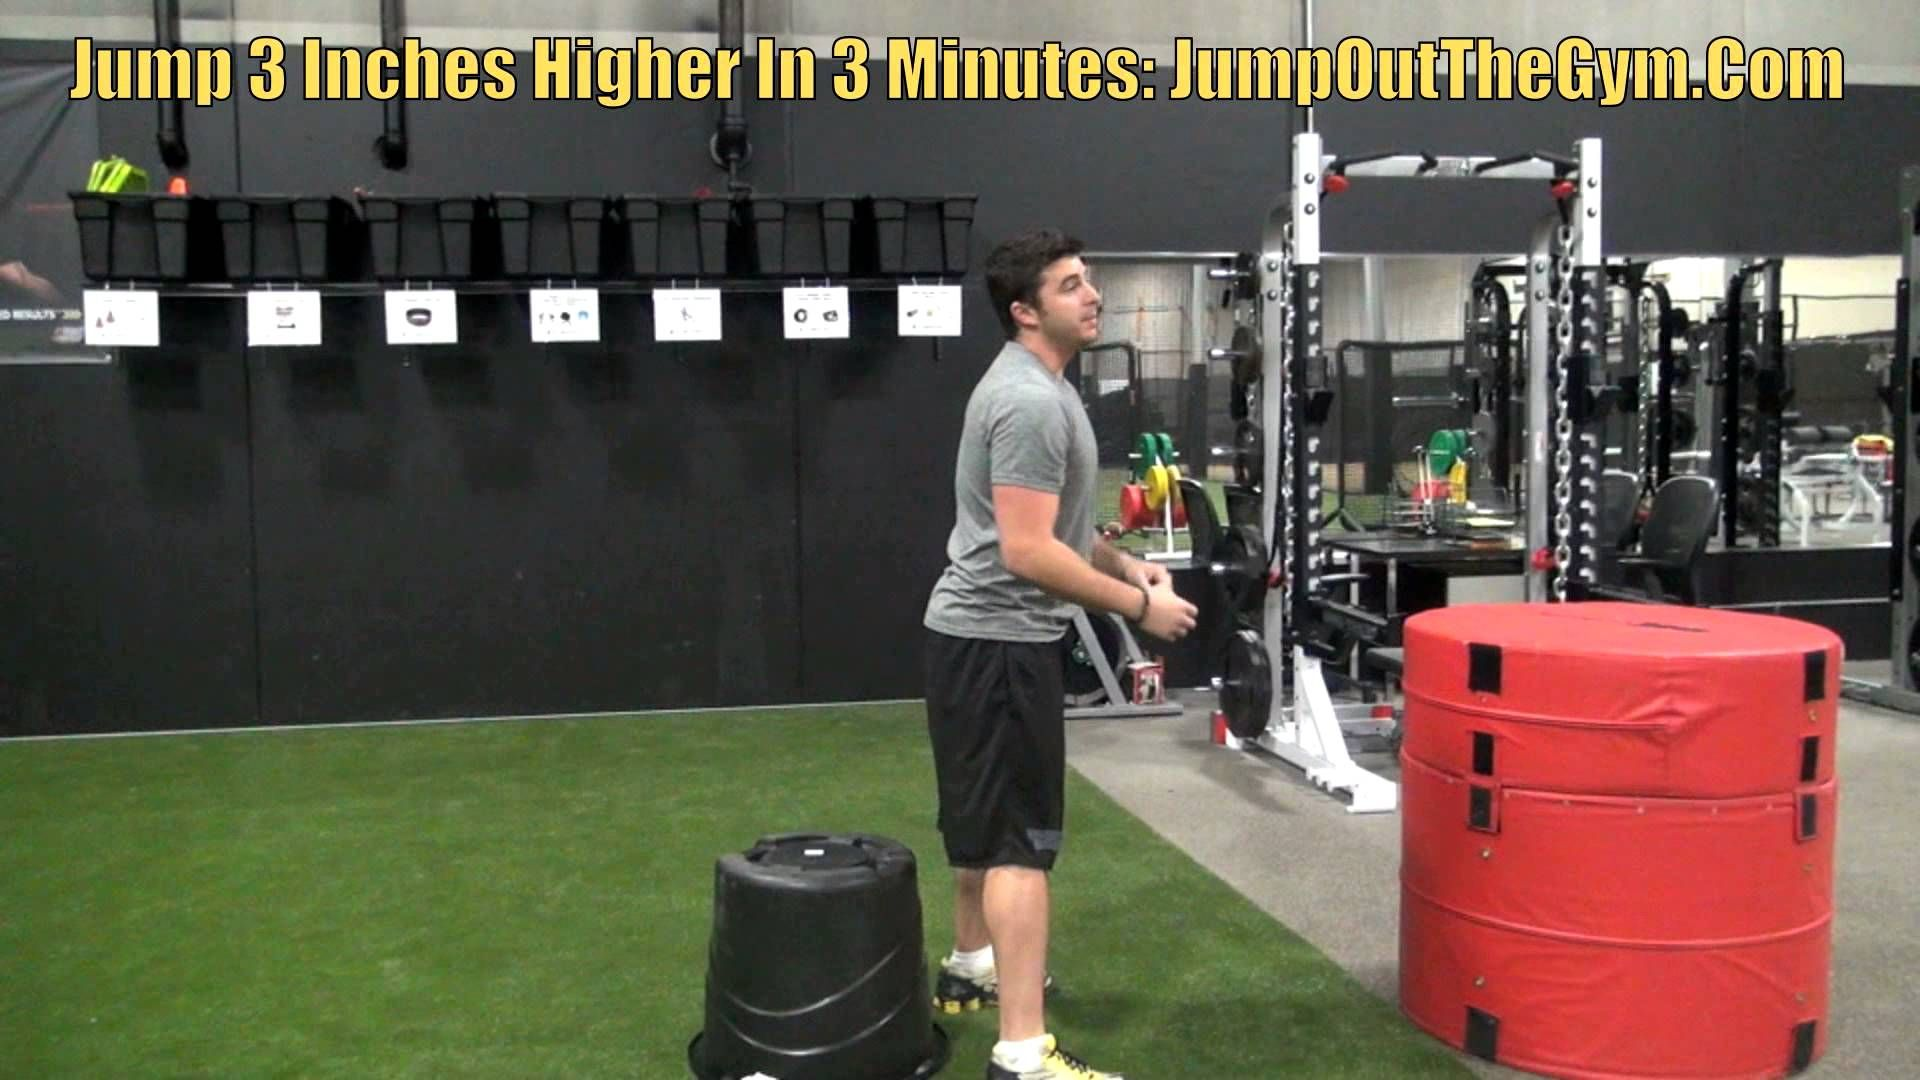 Vertical Jump How To Dunk For Short People Jump Higher Jup 3 Higher In A Very Short Time By Using Vertical Jump Training High Jump Vertical Jump Workout